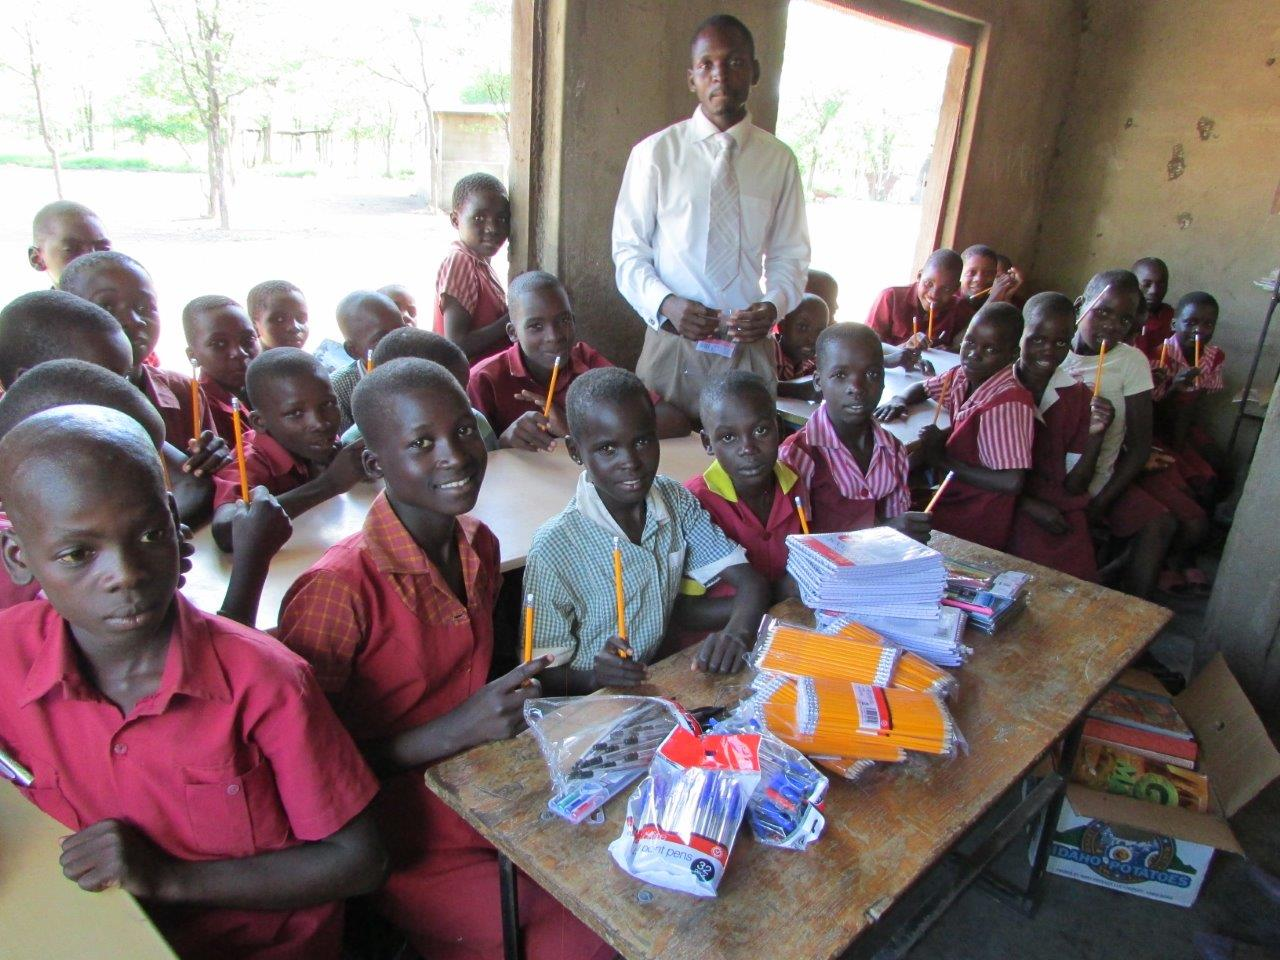 Employees send love through school supplies to the Lirhanzo Children's Village Primary School in Chikombedzi, Zimbabwe